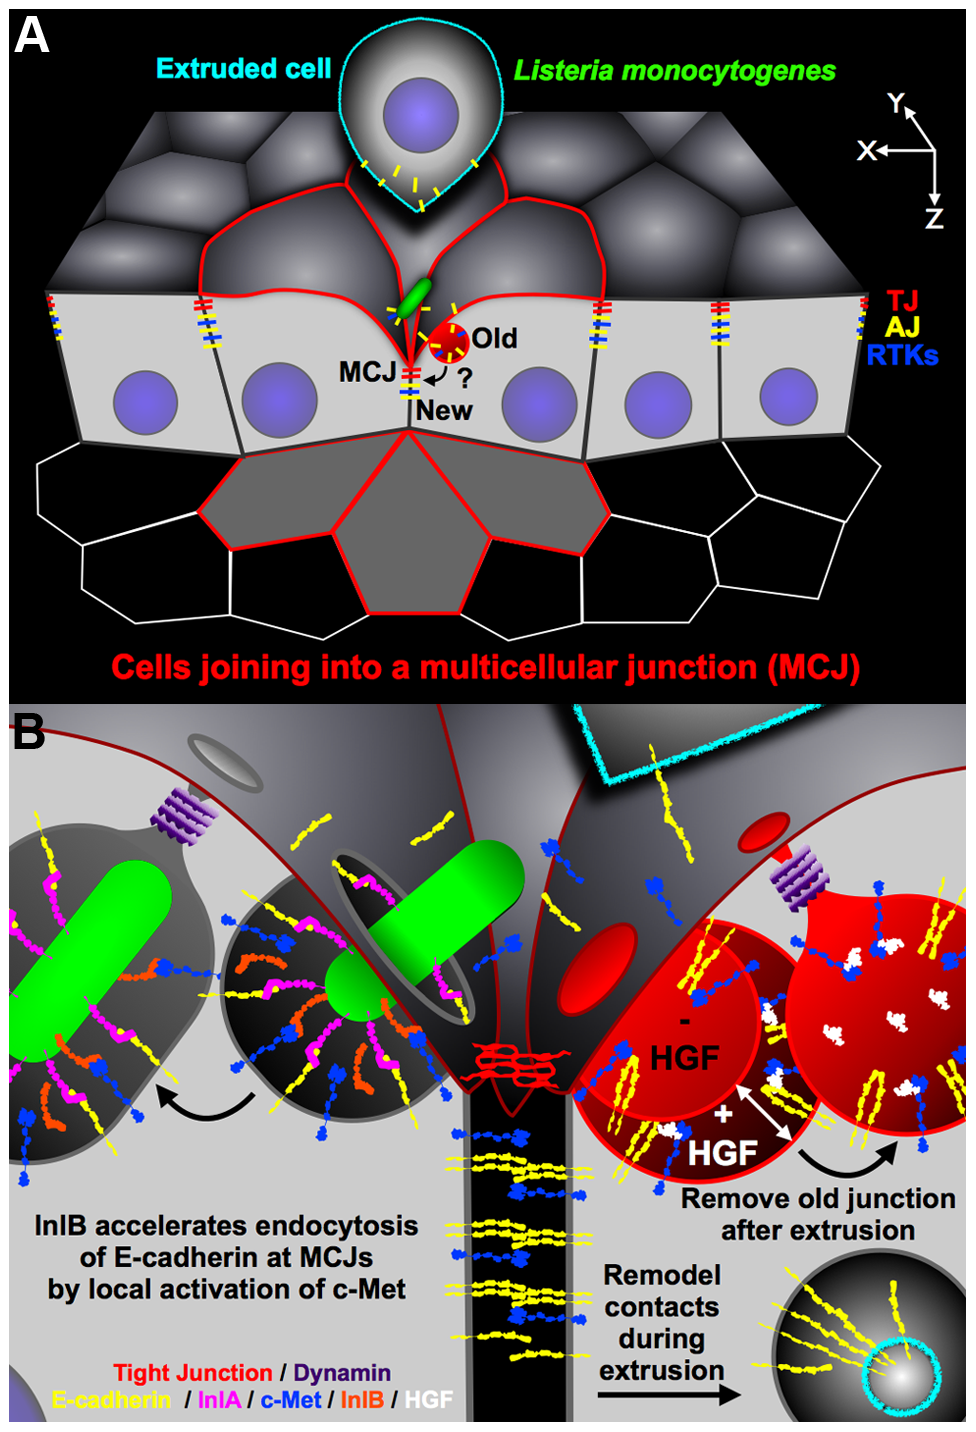 Diagram of <i>Lm</i> invasion coupled to junctional remodeling by endocytosis at the MCJ.